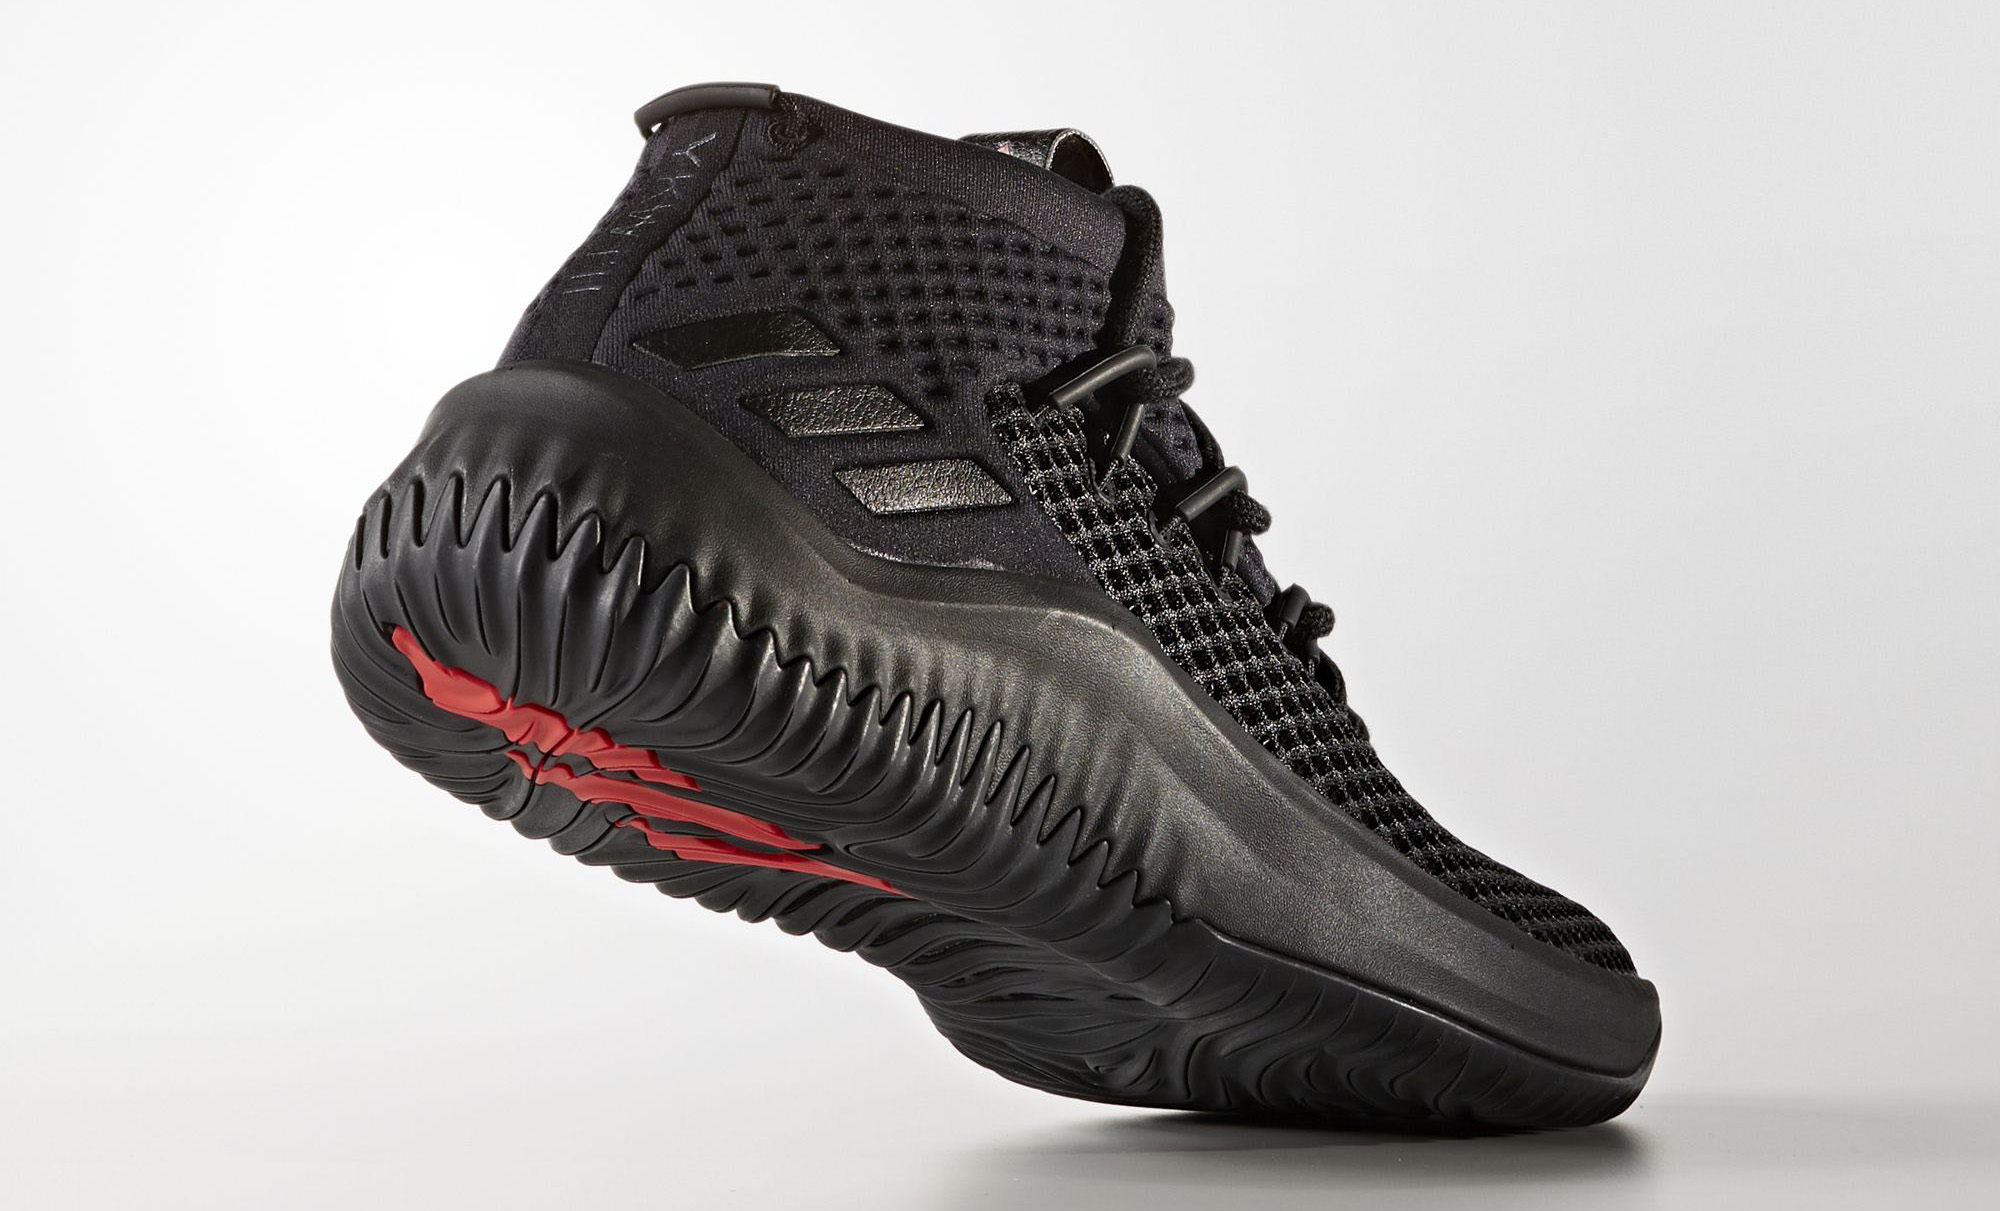 designer fashion 3d8c0 8ce7c ... the black scarlet edition of the adidas dame 4 becomes available at  eastbay beginning november 10